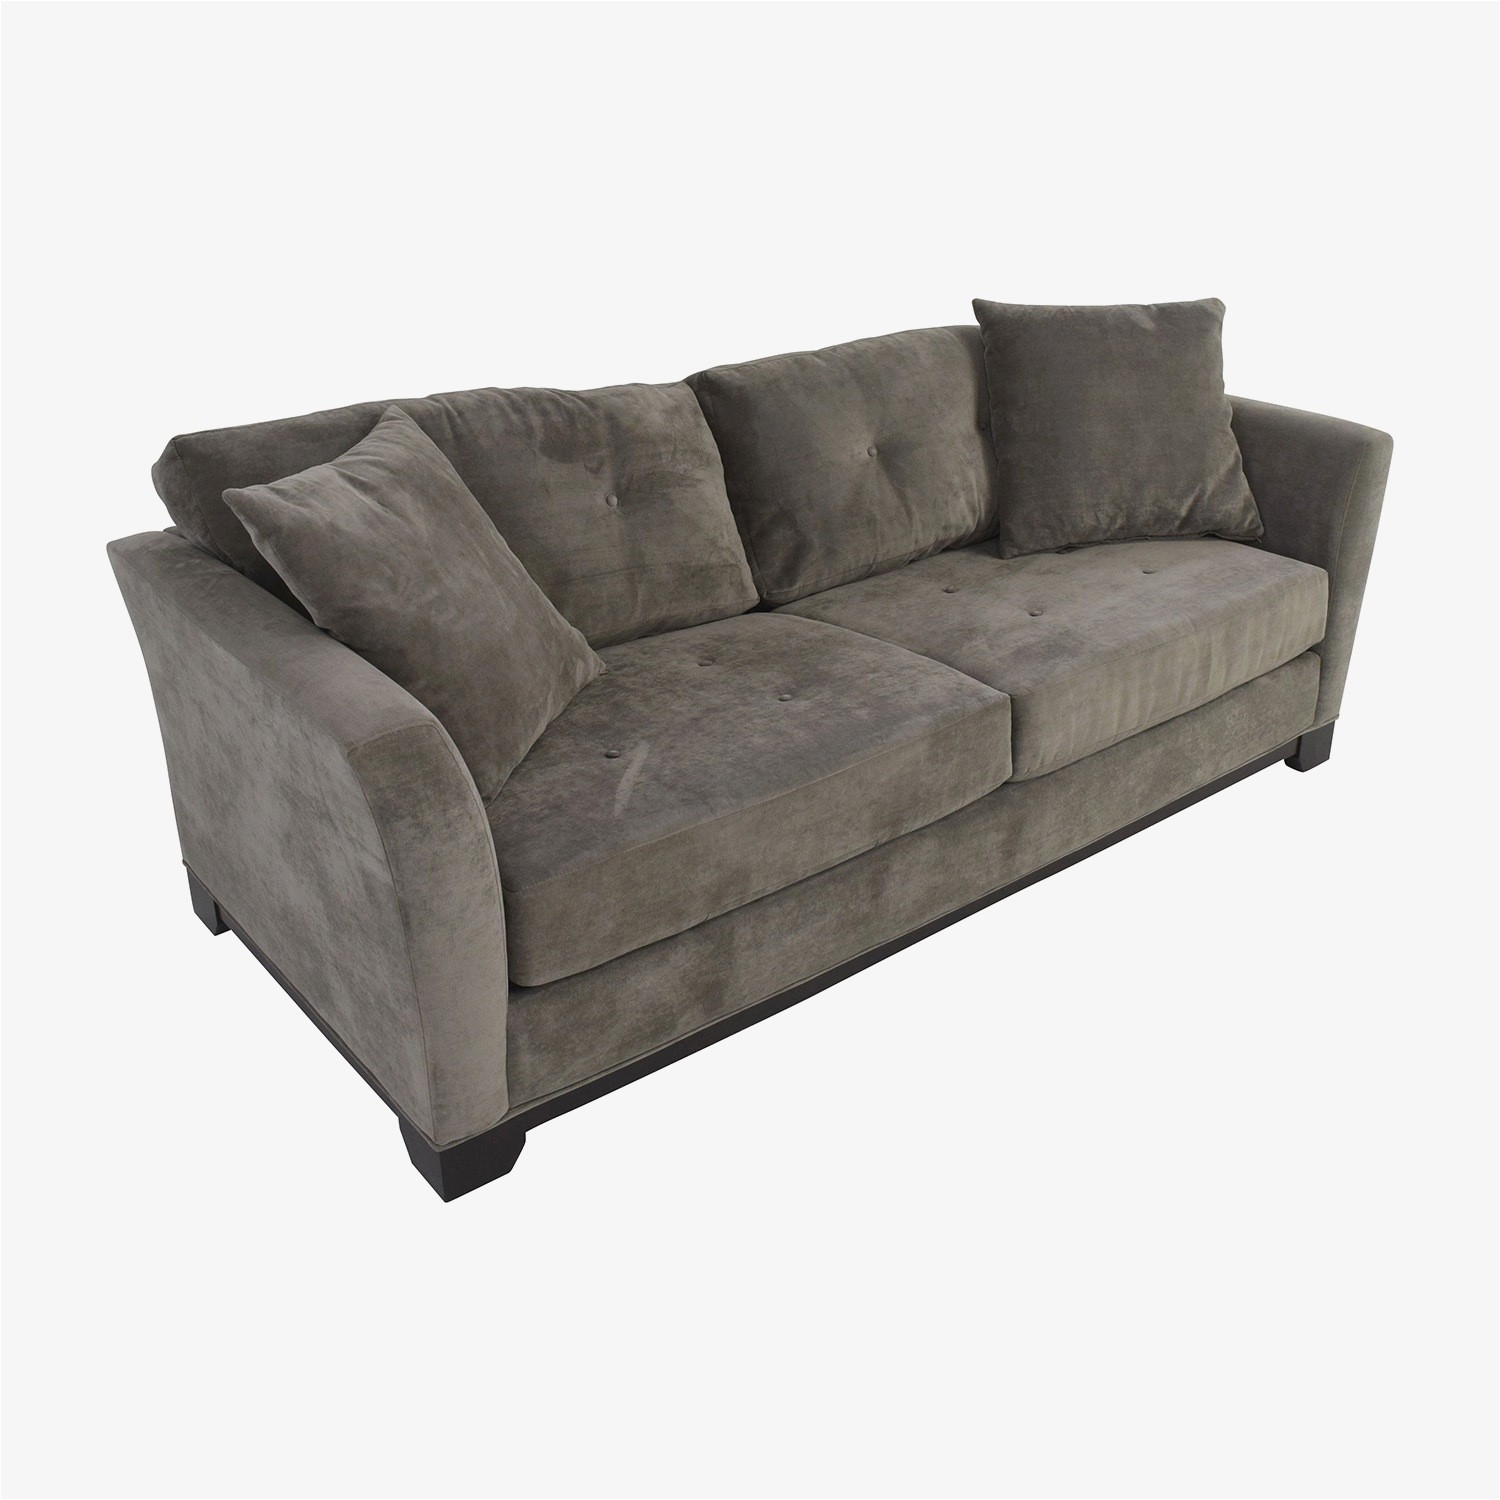 Living Spaces Sleeper Sofa – Home Decor 88 Pertaining To Aspen 2 Piece Sleeper Sectionals With Laf Chaise (Image 18 of 25)